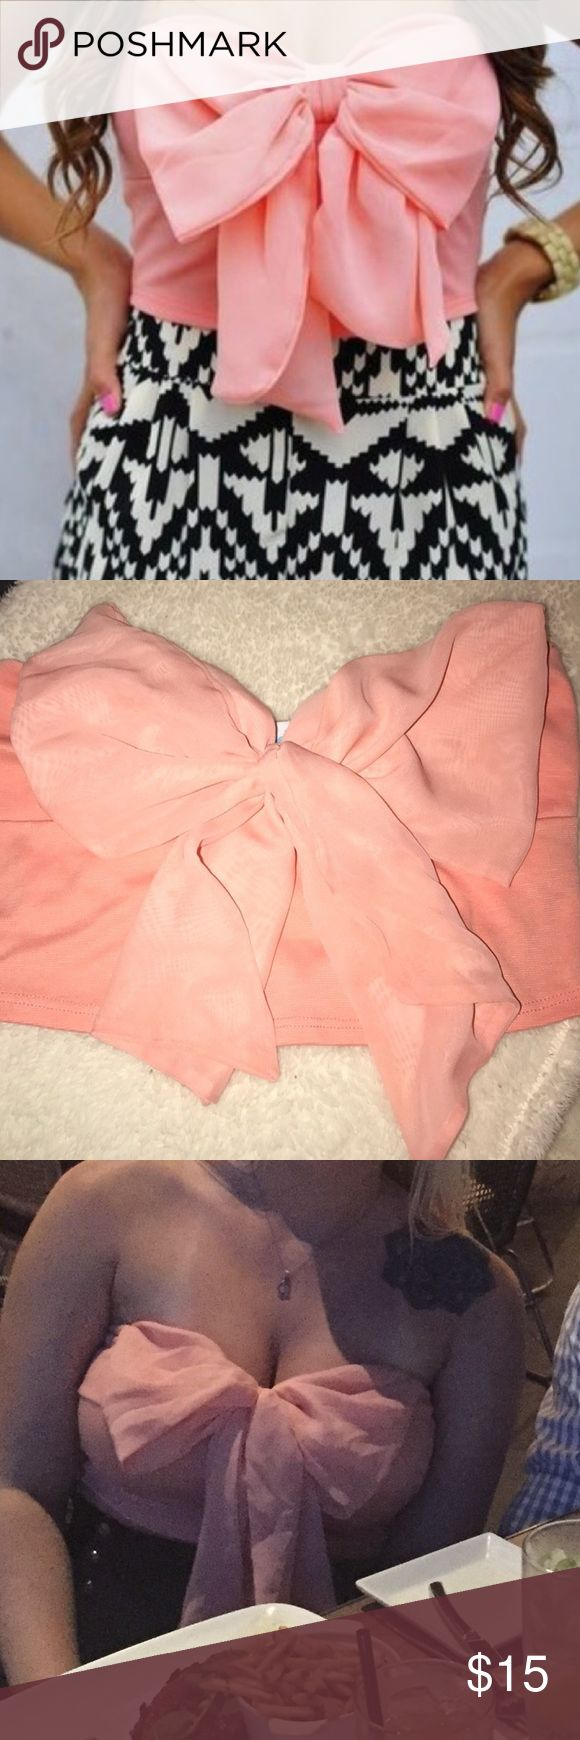 ♚ Bow Crop Top Very cute bow top! Only worn once. Shop Hope's Tops Crop Tops